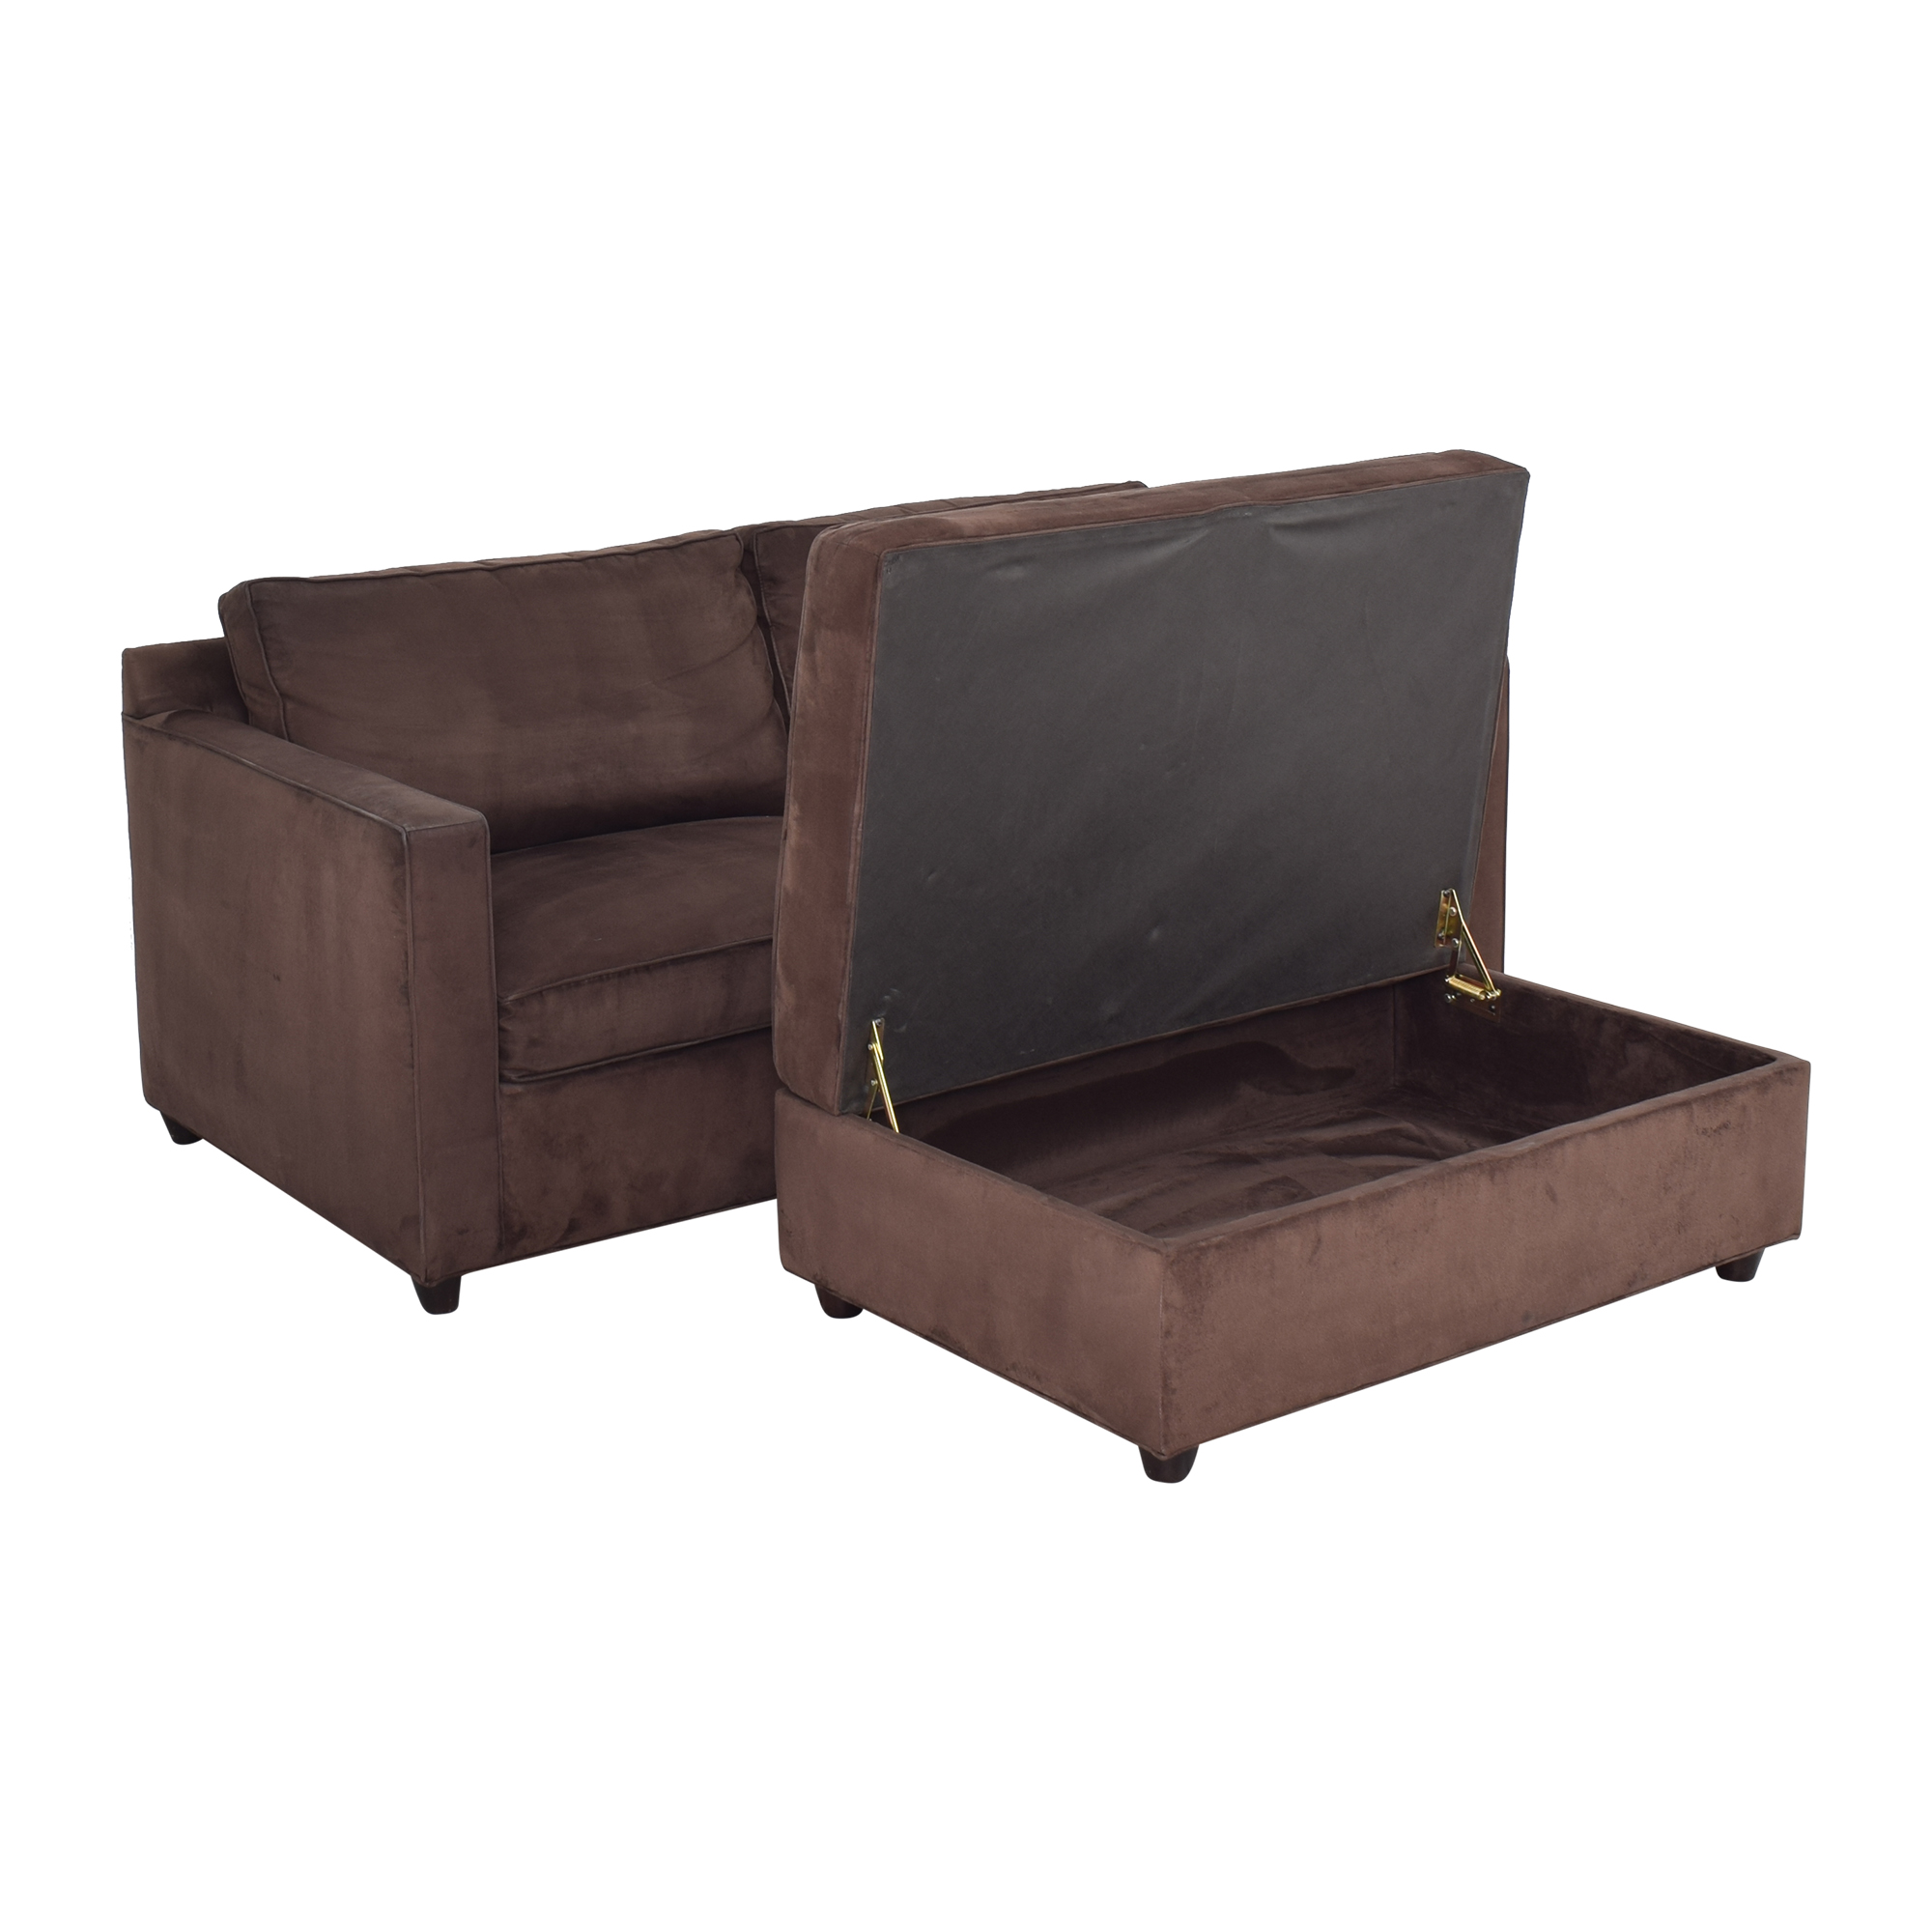 buy Crate & Barrel Two Cushion Sofa with Storage Ottoman Crate & Barrel Classic Sofas